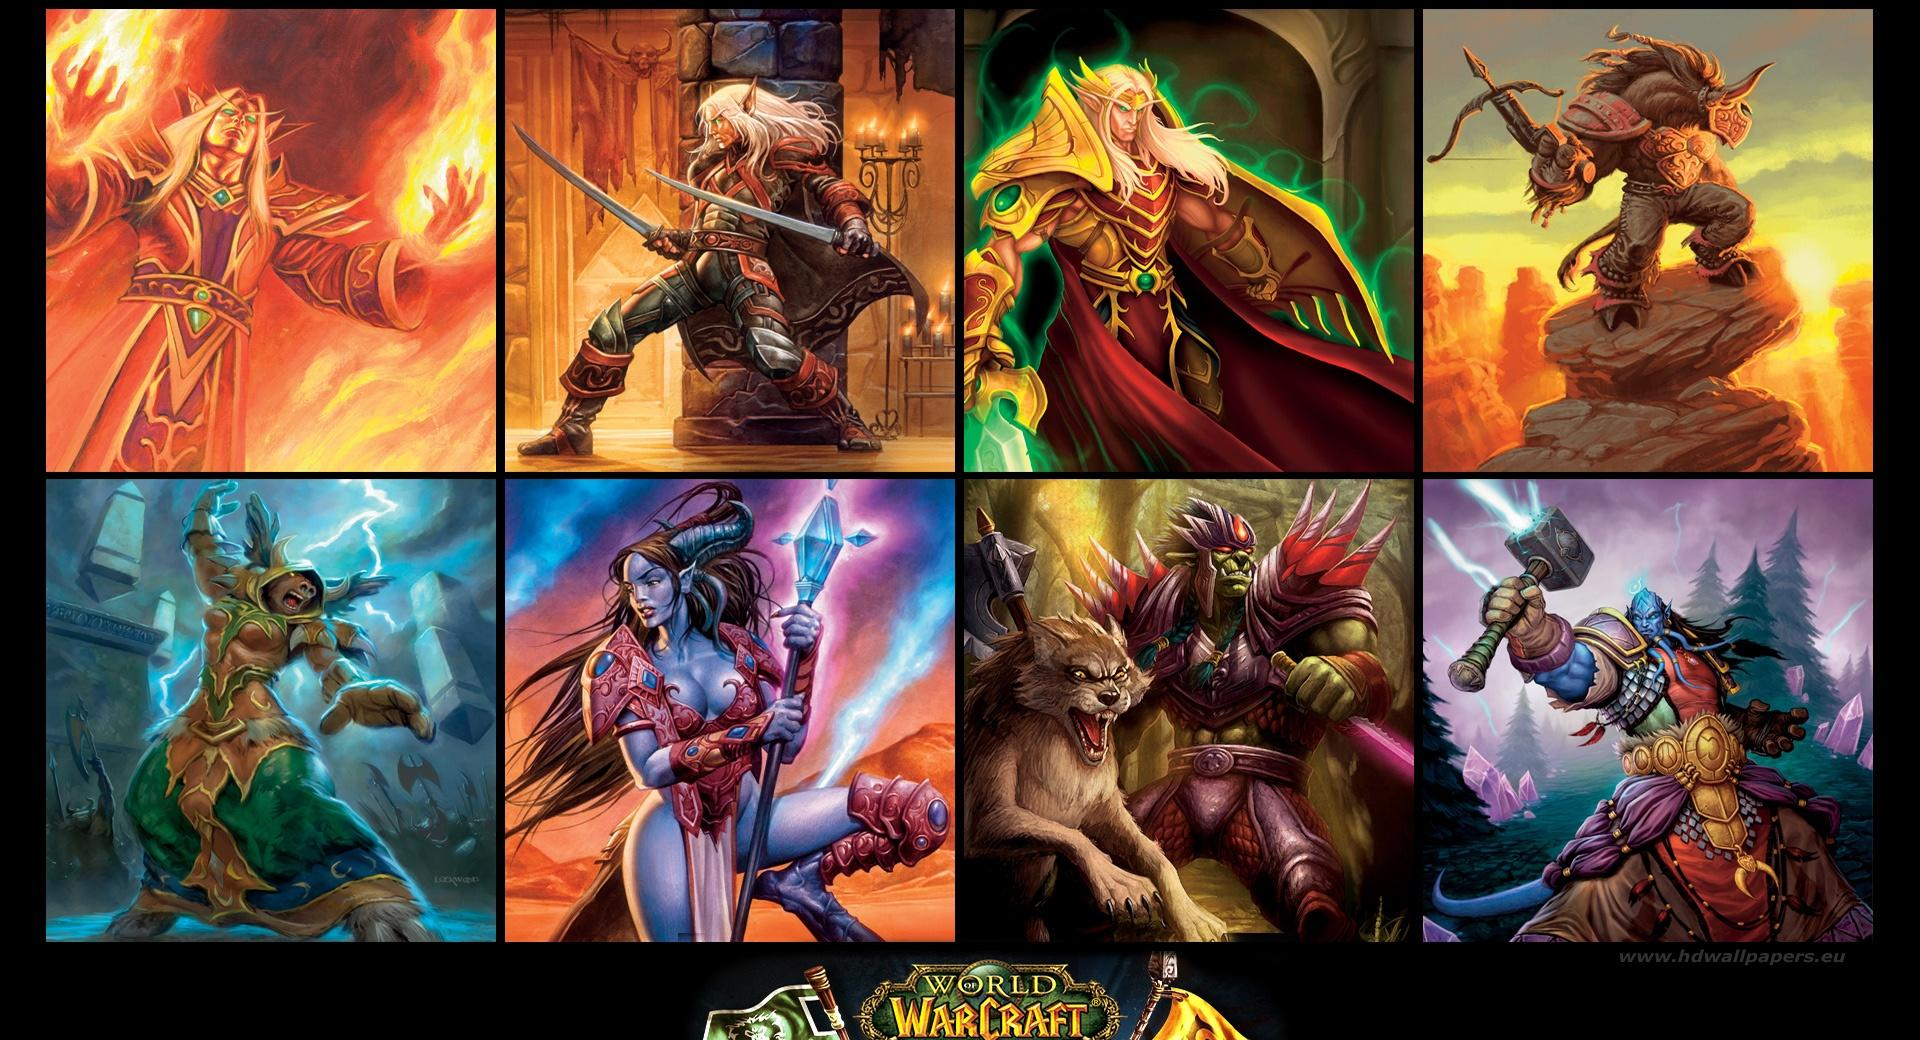 World of Warcraft, The Burning Crusade at 320 x 480 iPhone size wallpapers HD quality